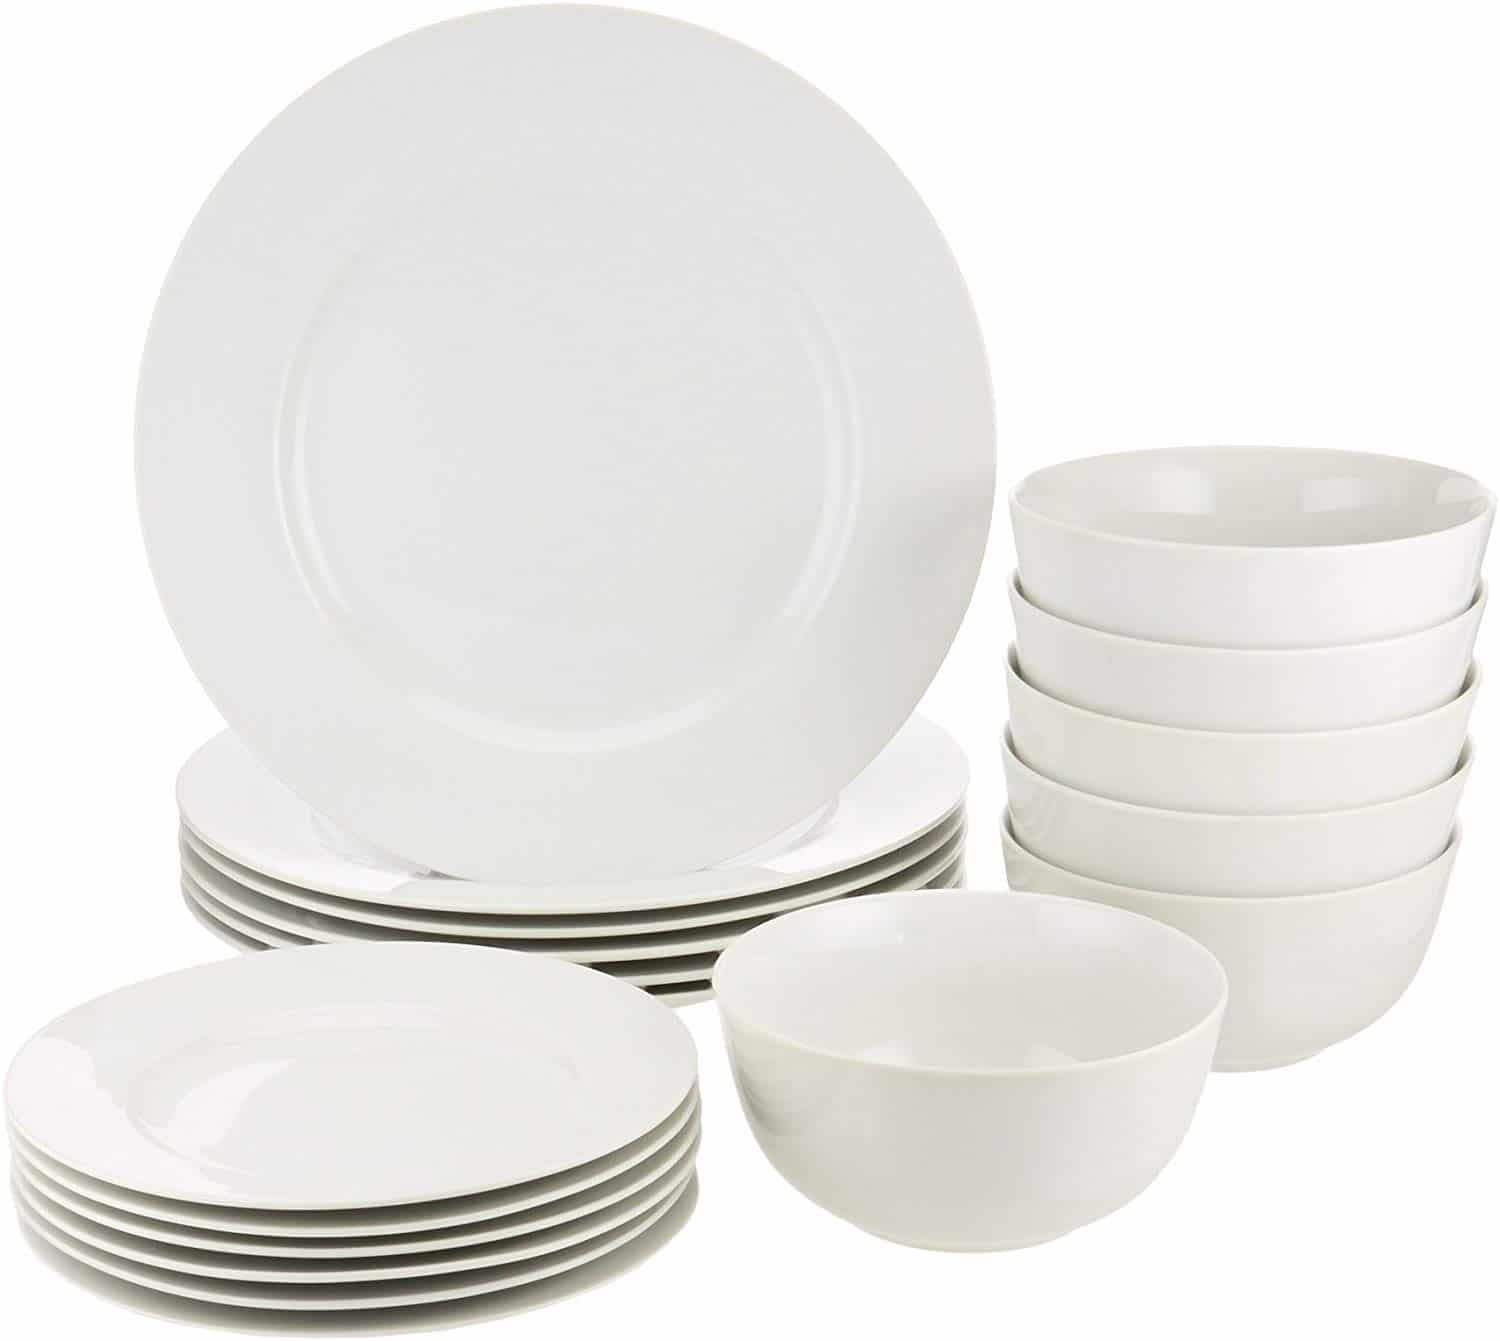 Amazon Basics 18-Piece White Kitchen dinner set